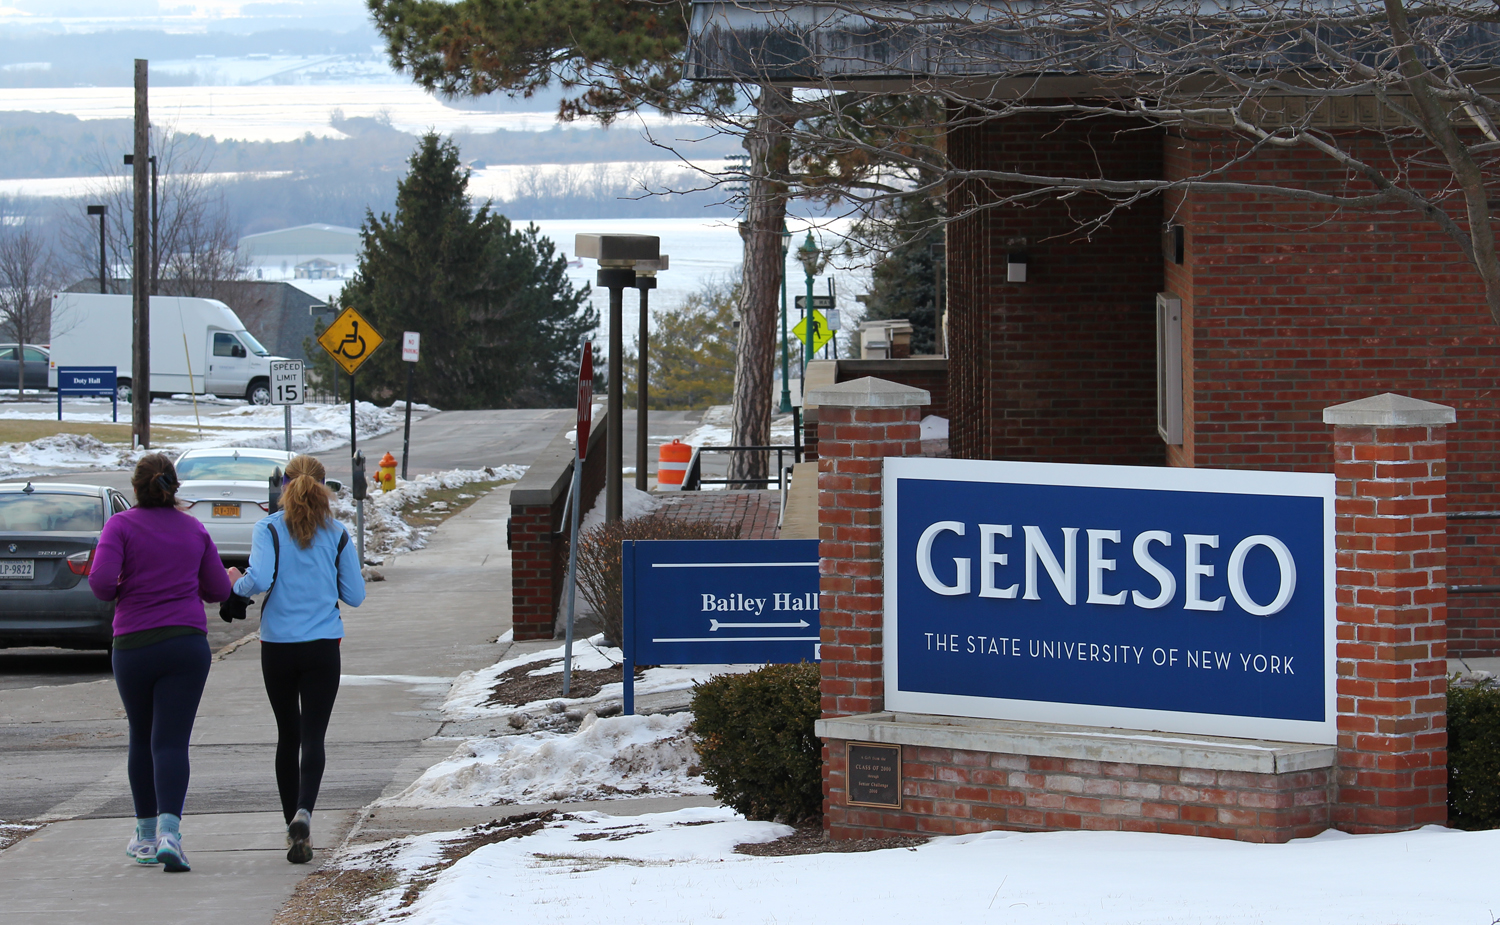 Alcohol Risk and Management Training Begins at SUNY Geneseo